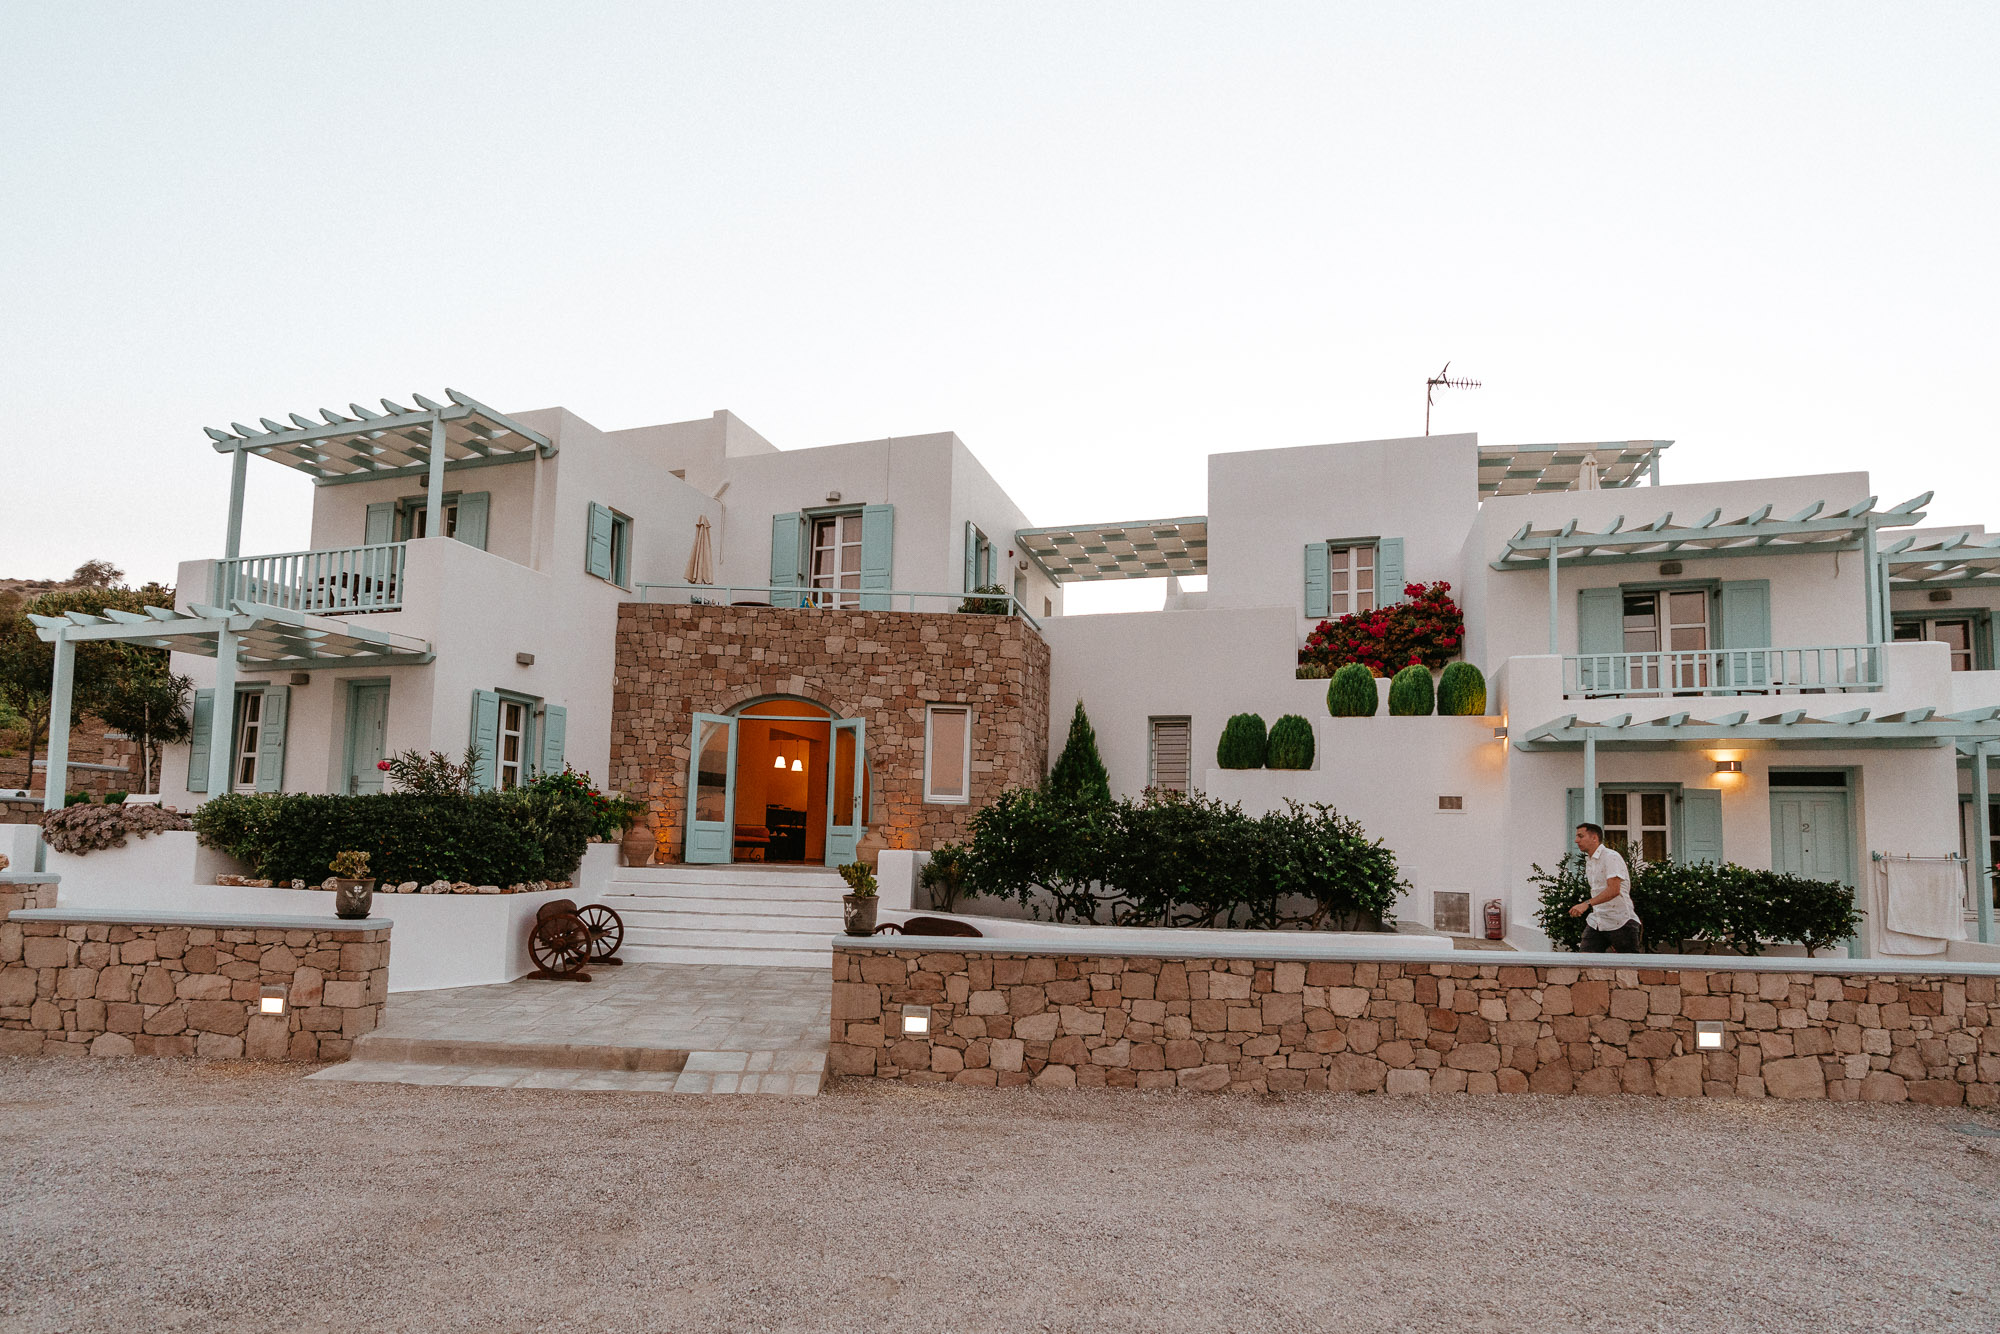 Asterias Boutique Hotel in Milos Greece Travel Guide via Find Us Lost